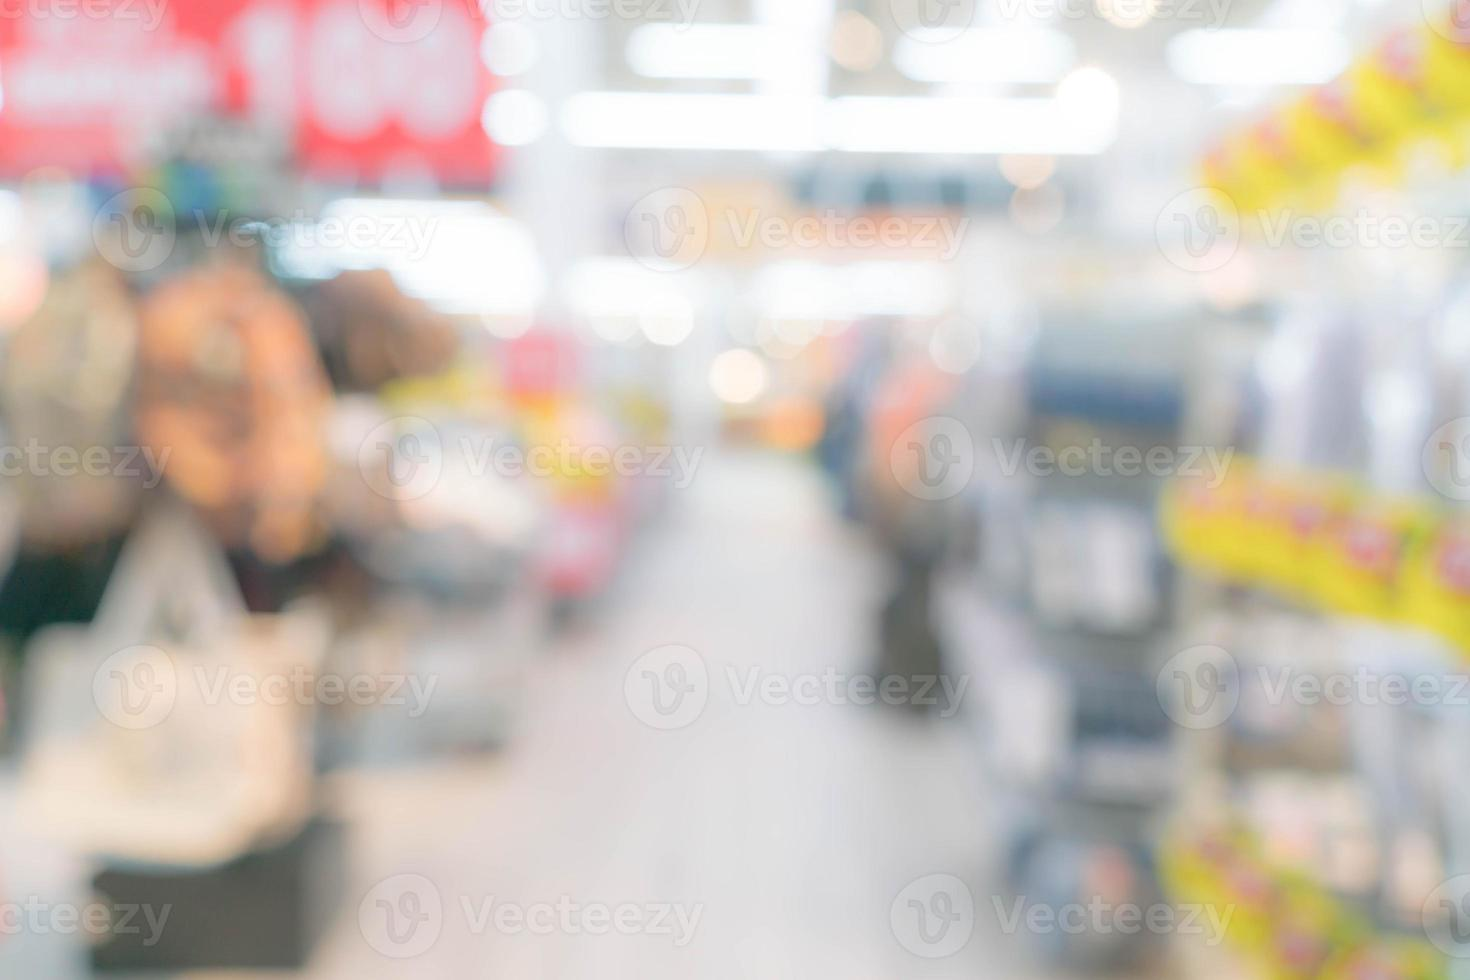 Abstract blur shopping mall and retail store interior photo